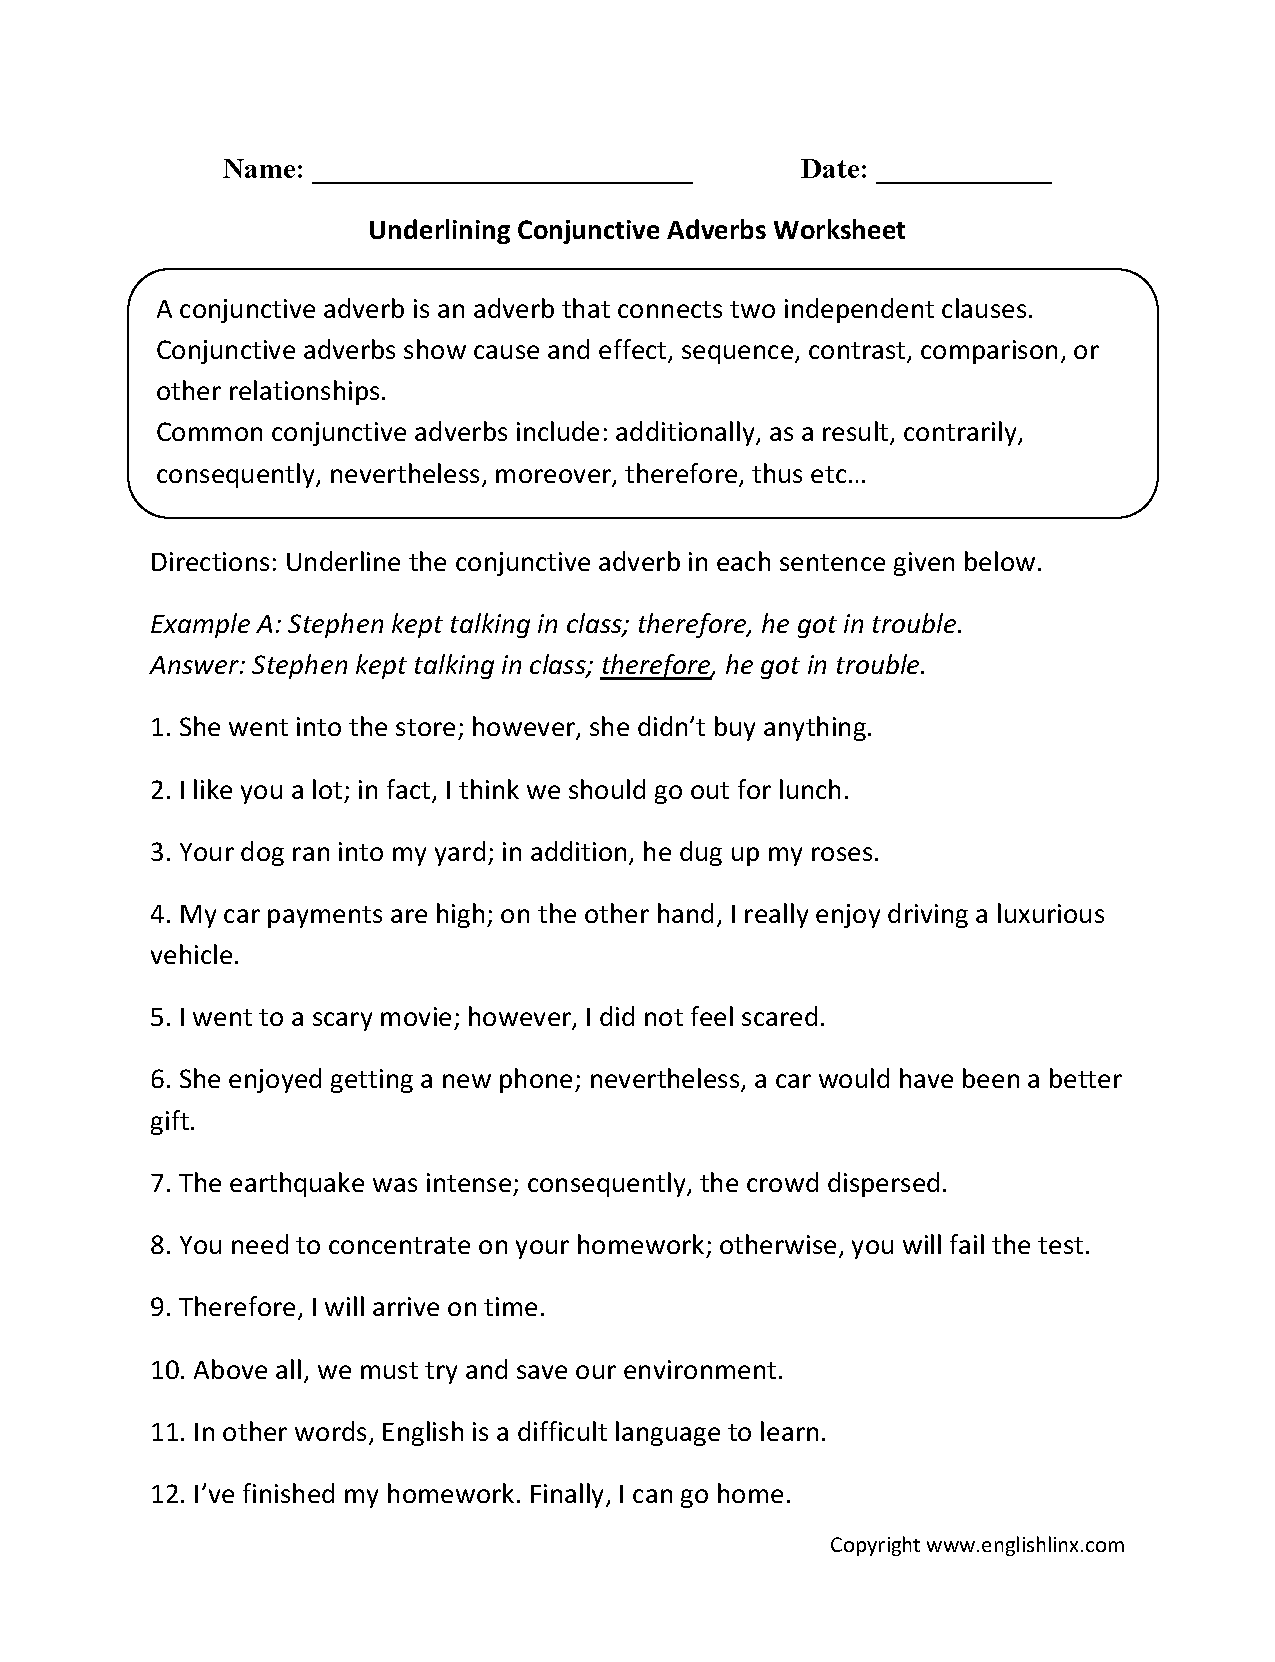 Weirdmailus  Remarkable Englishlinxcom  Conjunctions Worksheets With Inspiring Worksheet With Beauteous Alcohol Worksheets Also Constructions Worksheet In Addition Deductions And Adjustments Worksheet For Federal Form W  And Free Printable Preschool Worksheets As Well As W  Personal Allowances Worksheet Additionally Chemical Bonding Review Worksheet Answers From Englishlinxcom With Weirdmailus  Inspiring Englishlinxcom  Conjunctions Worksheets With Beauteous Worksheet And Remarkable Alcohol Worksheets Also Constructions Worksheet In Addition Deductions And Adjustments Worksheet For Federal Form W  From Englishlinxcom